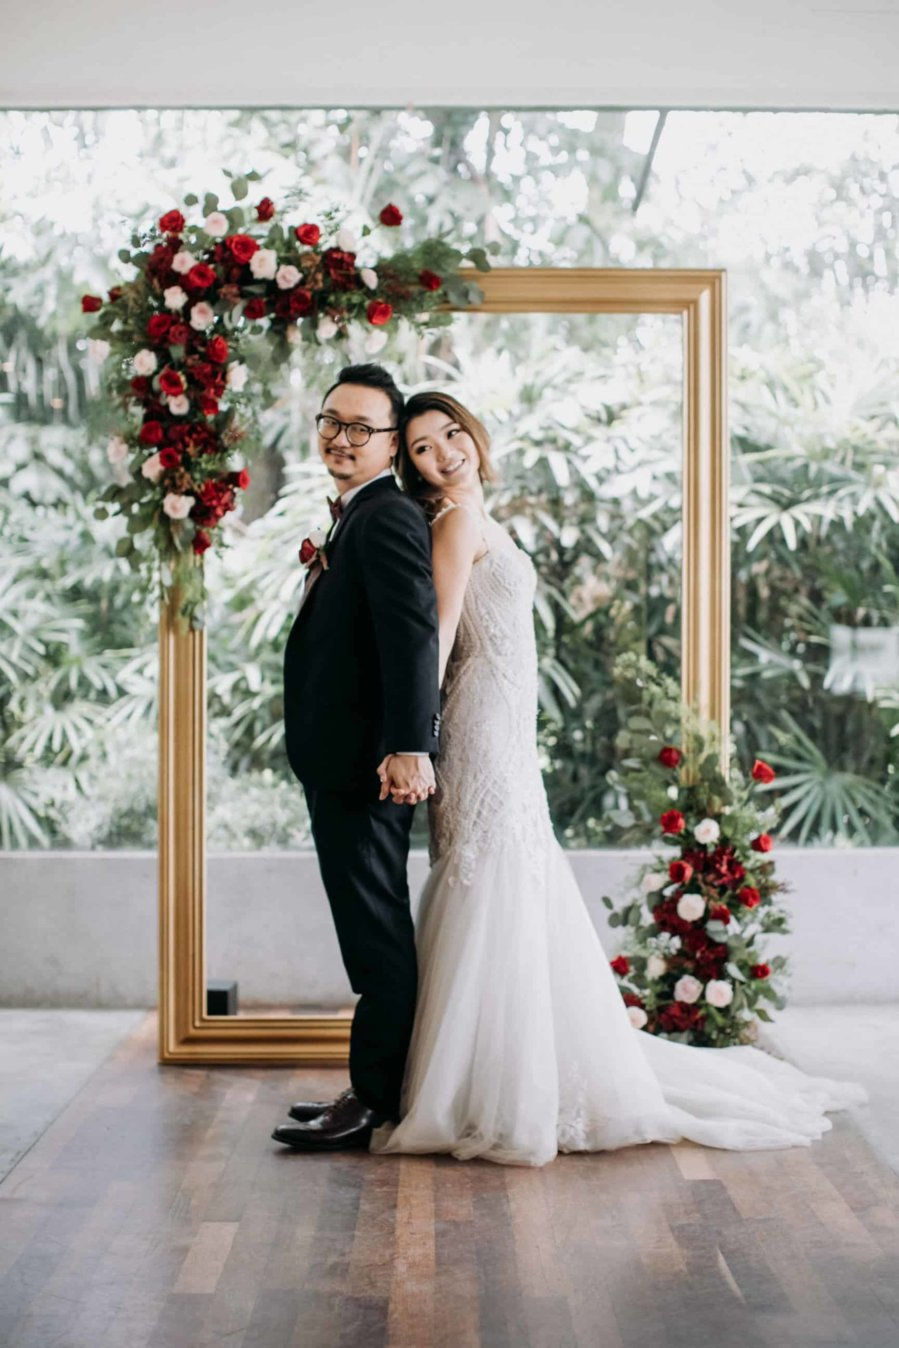 cliff choong destination portrait and wedding photographer malaysia kuala lumpur prewedding sunset golden sunrise shots bride and groom HOLDING HANDS rotterdam netherlands wedding getaway elopement bouquet flowers forrest couple moment Actual Day at Enderong Resort Genting Highlands Garden Ceremony Ciao Italian Ristorante Rustic Wedding